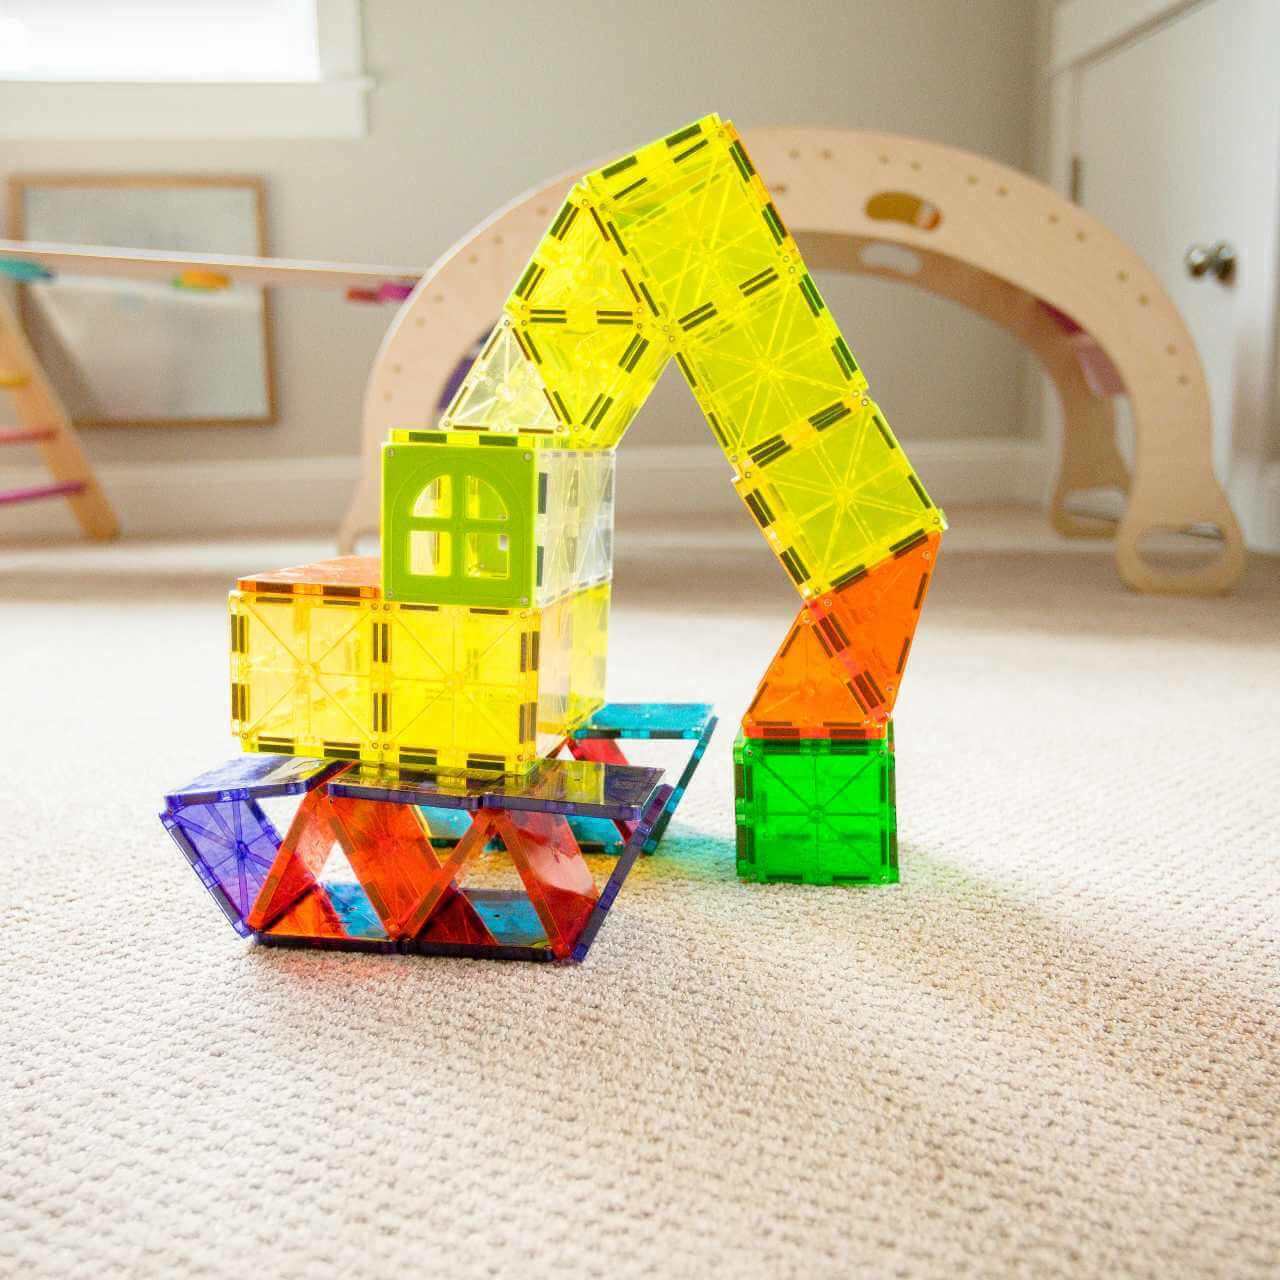 A construction crane built with Magna-Tiles